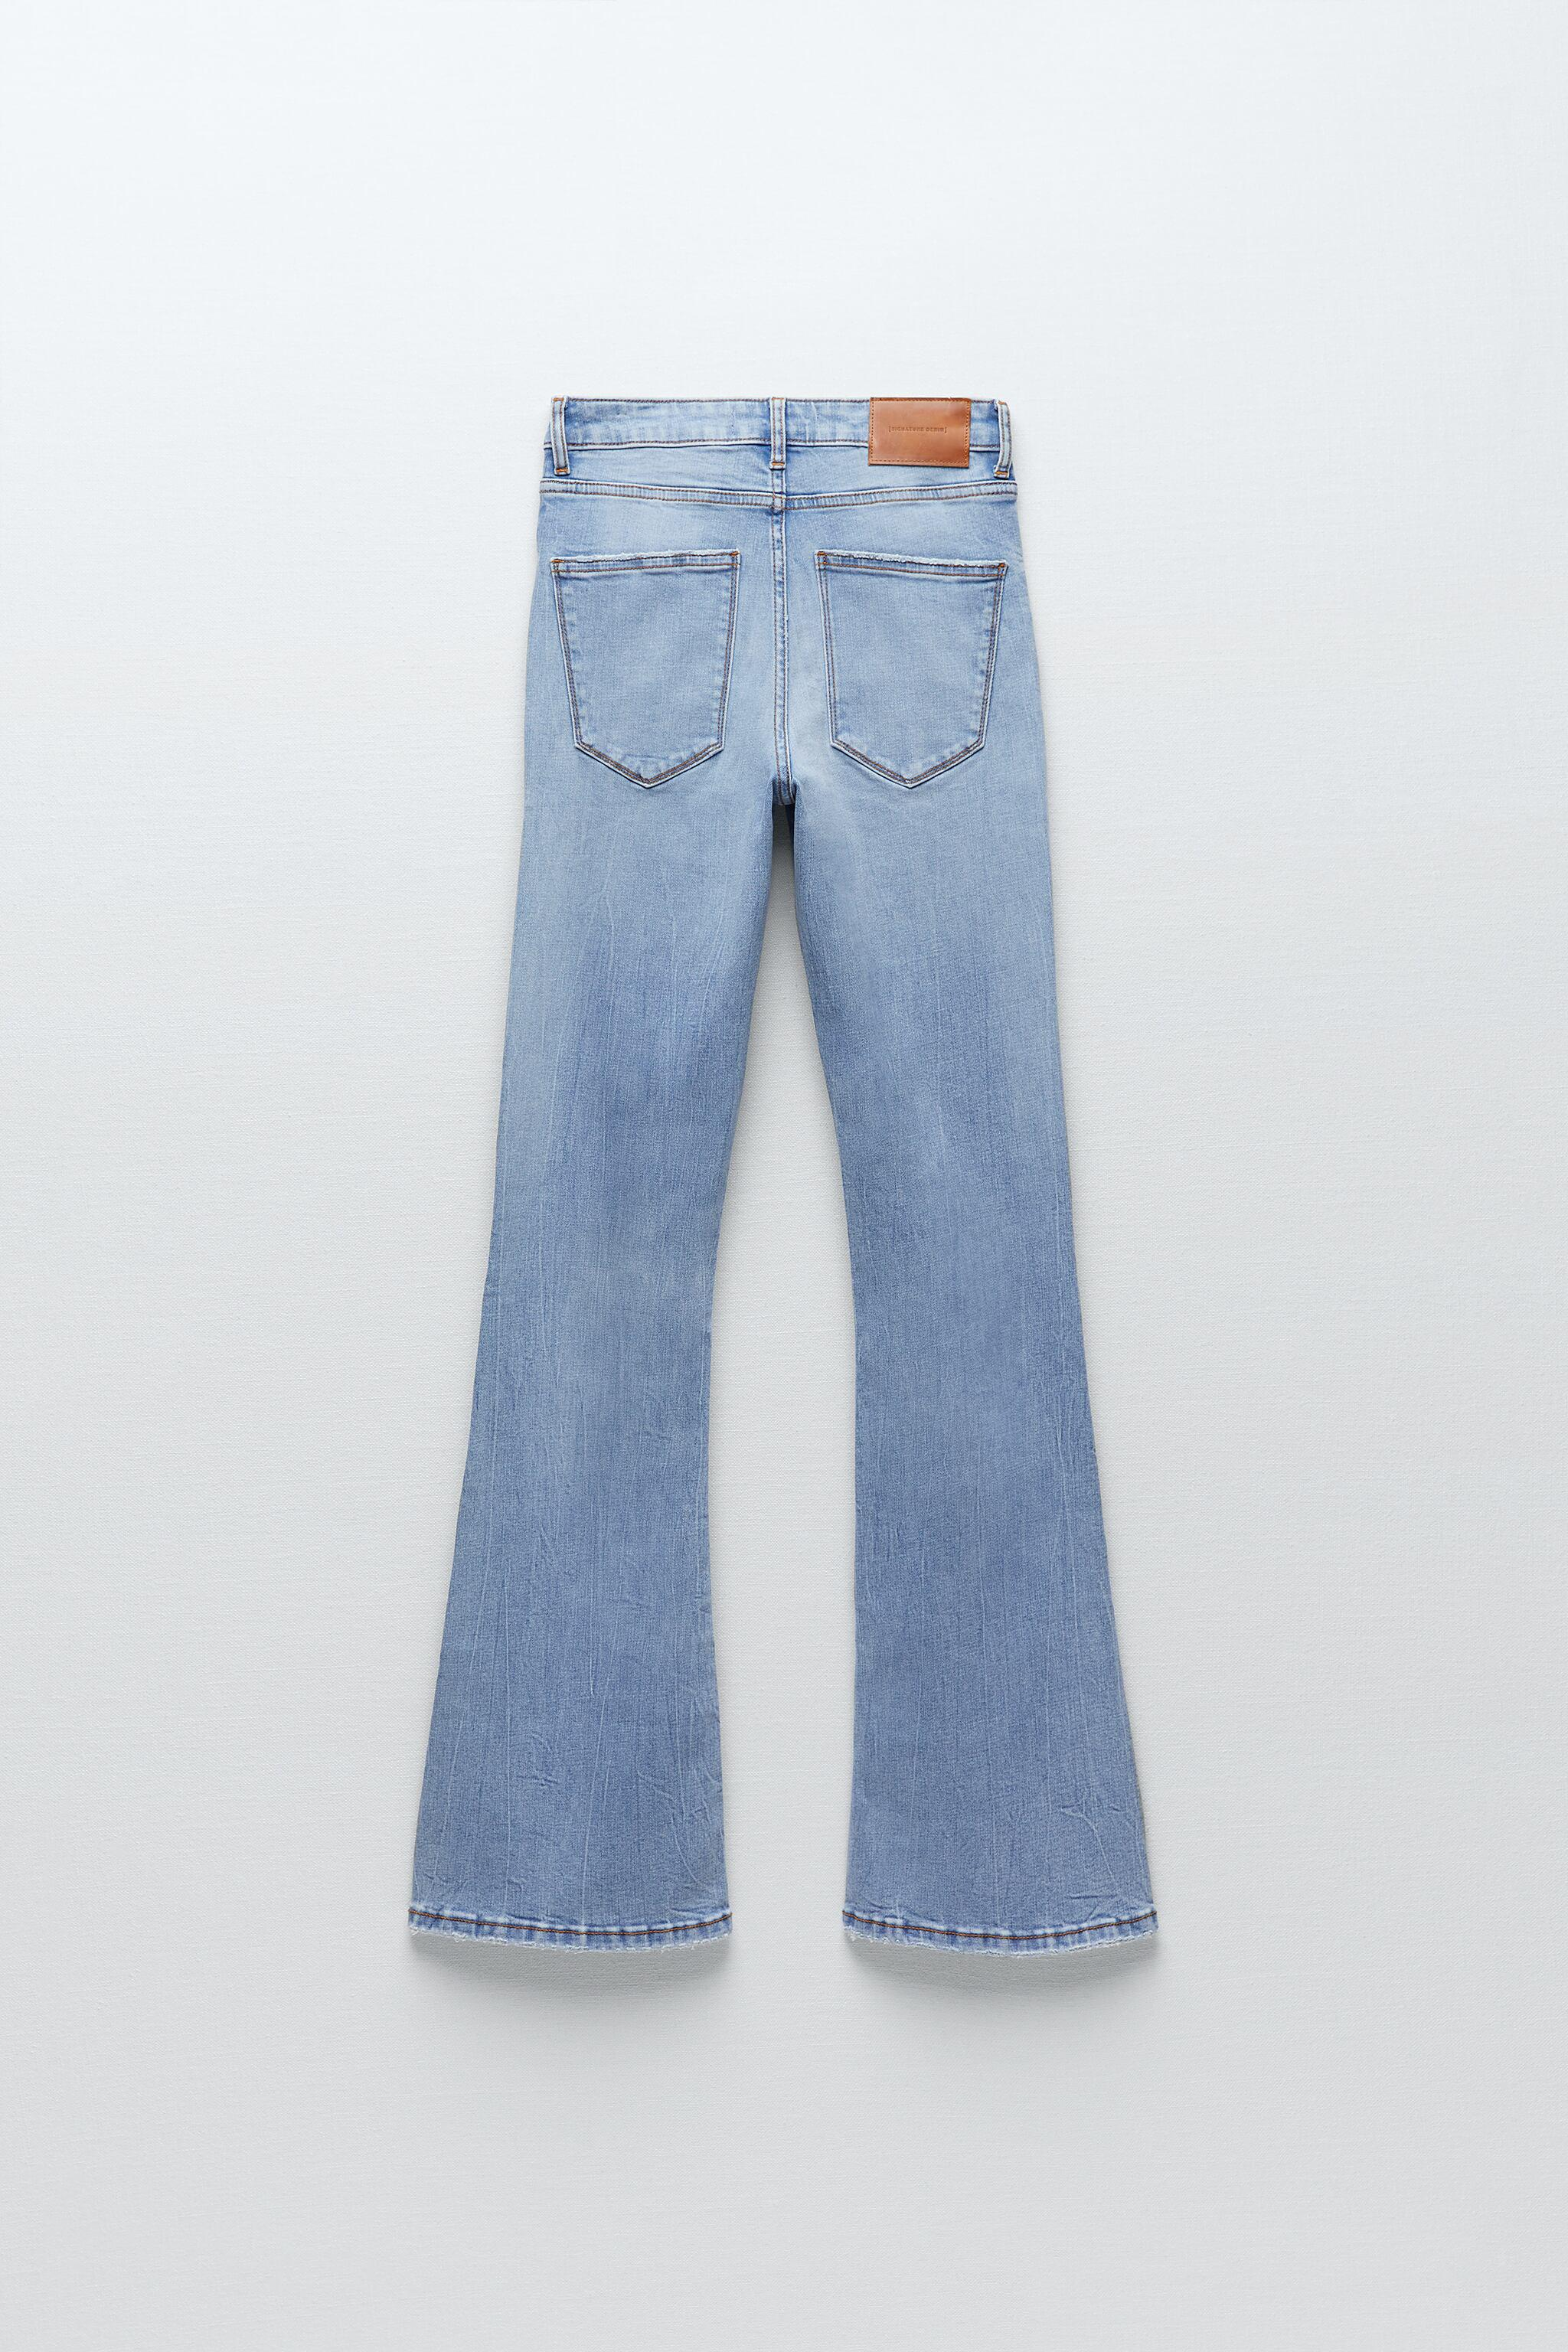 ZW THE SKINNY FLARE JEANS 7